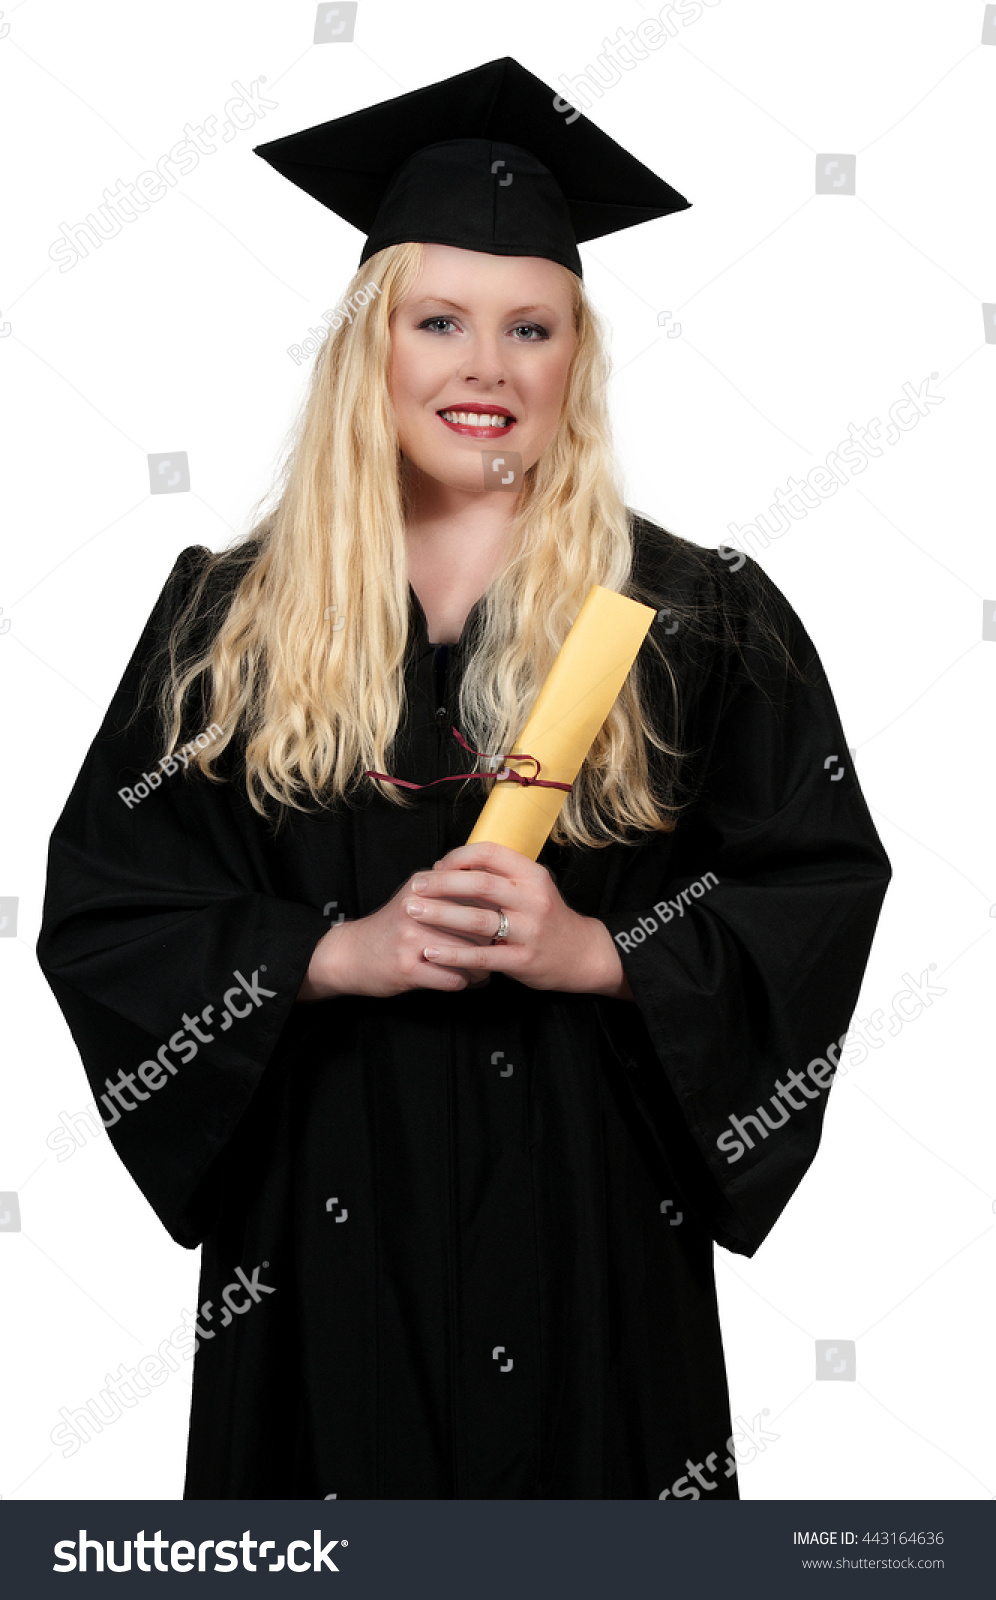 Smart Woman In Her College Graduation Gown Or Robe Stock Photo ...